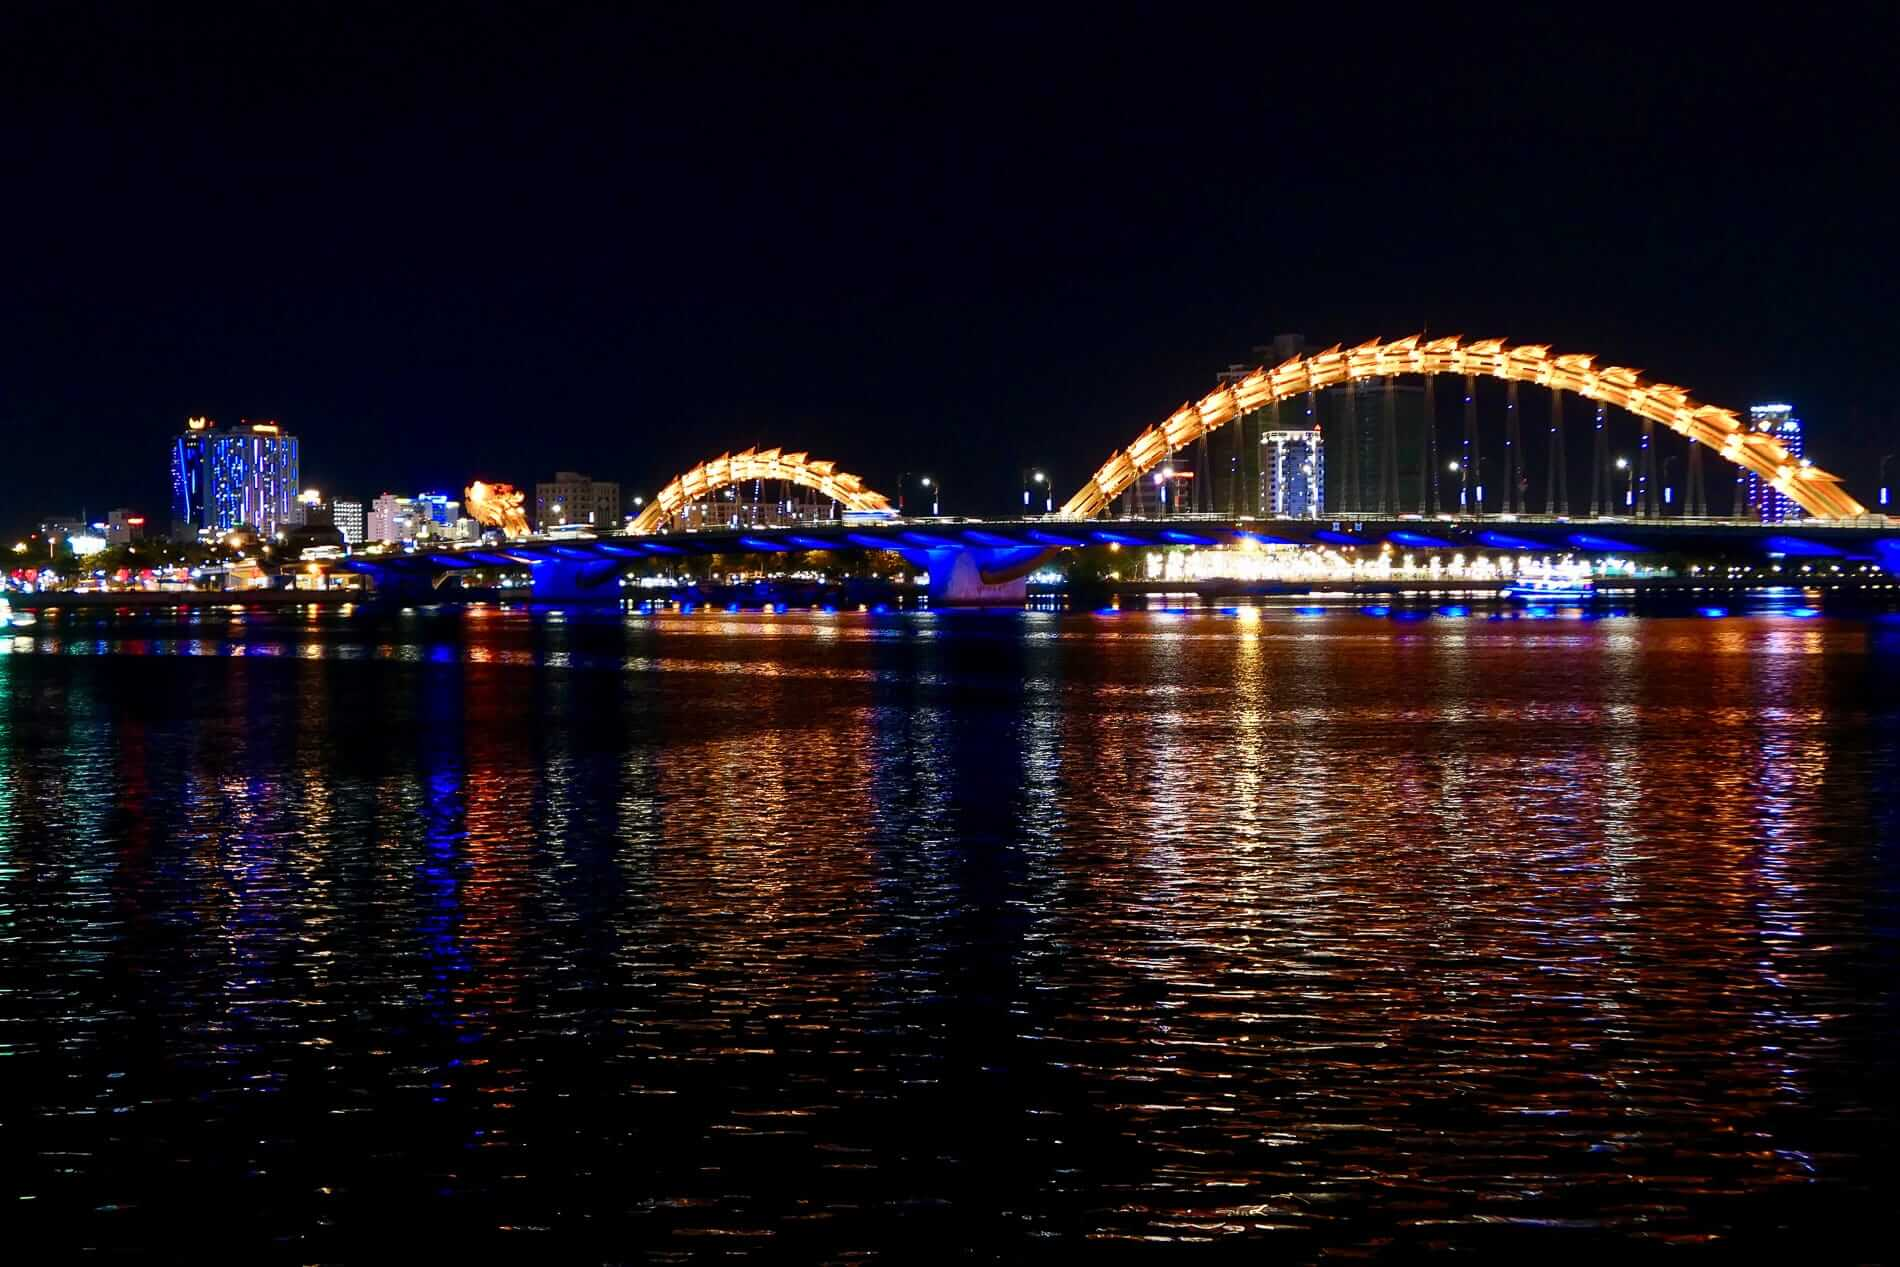 the dragon bridge at night